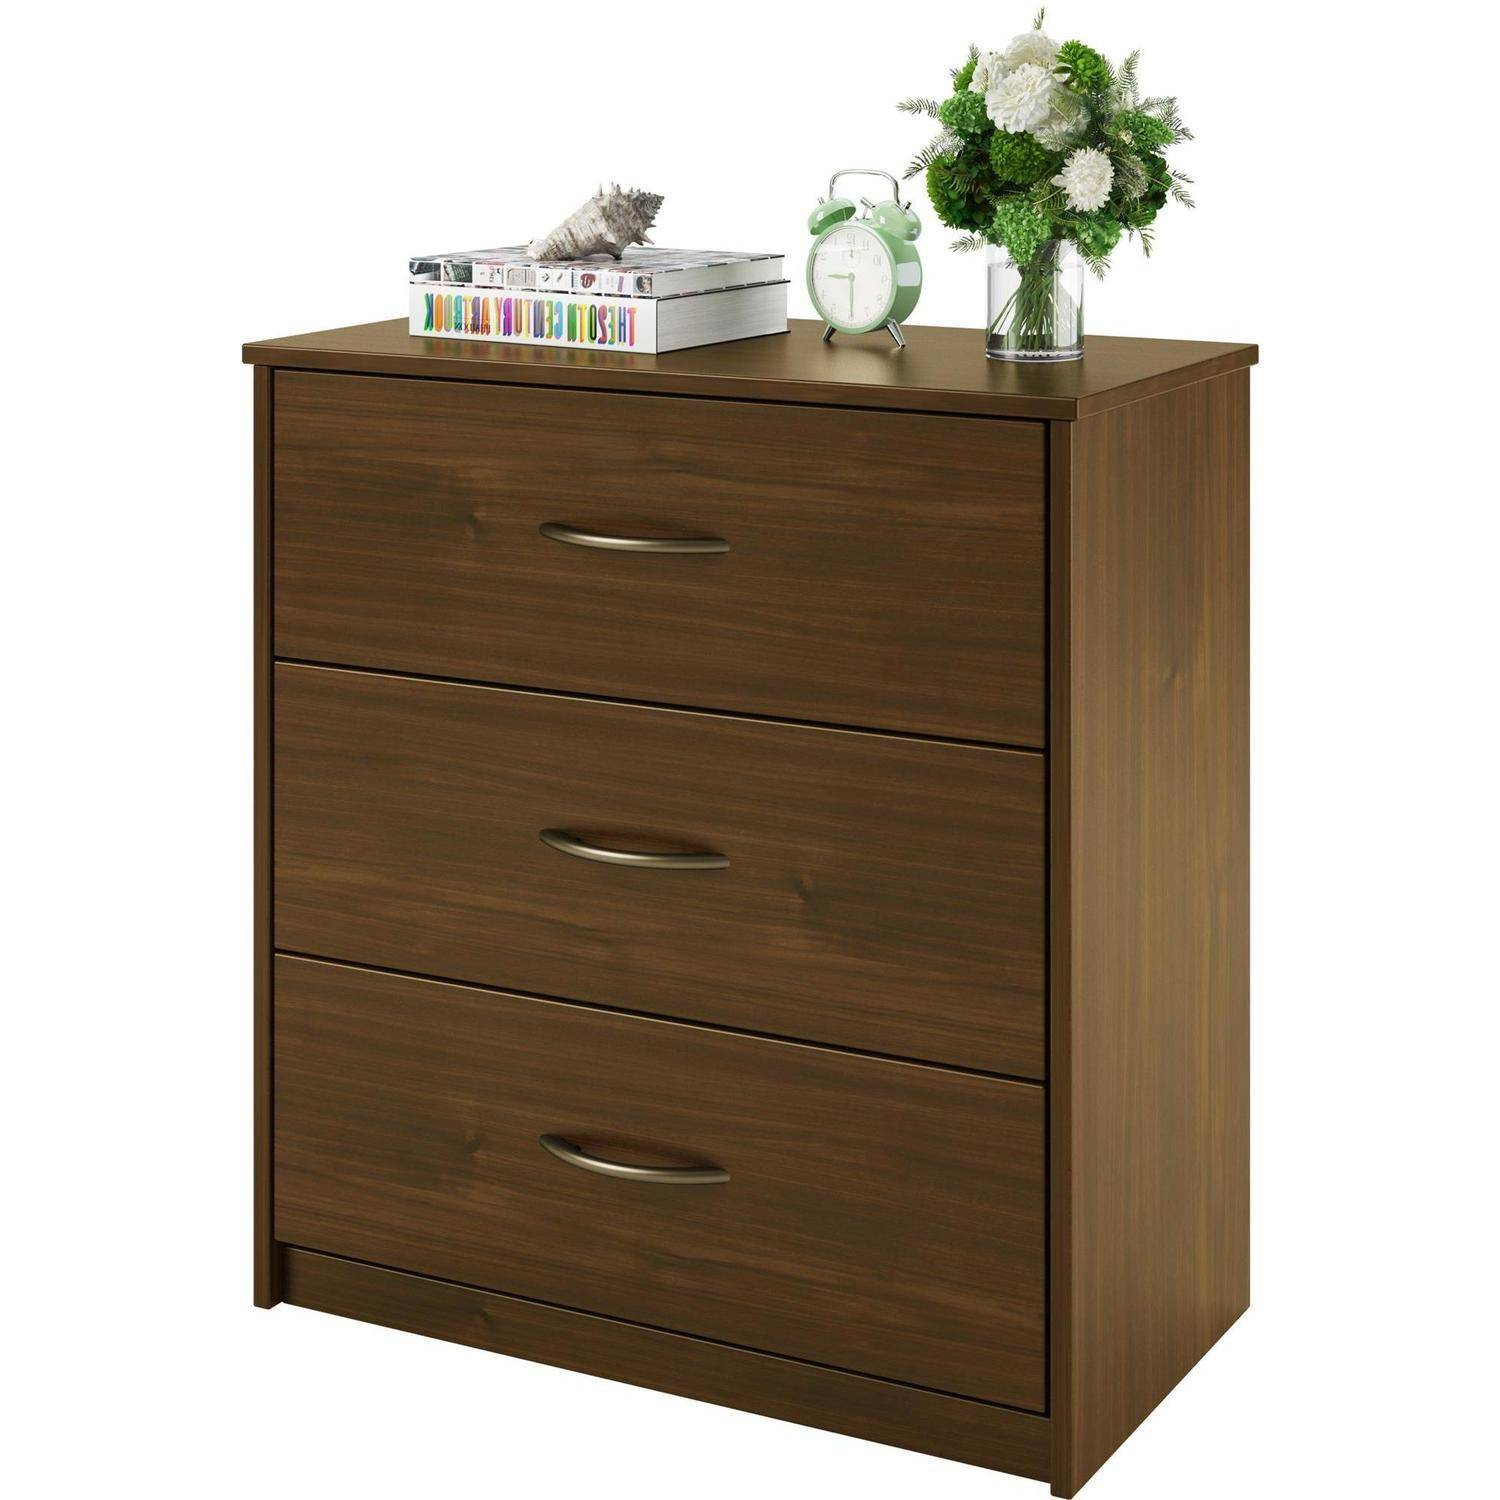 3 drawer dresser chest bedroom furniture black brown white storage wood modern ebay for Bedroom set with storage drawers